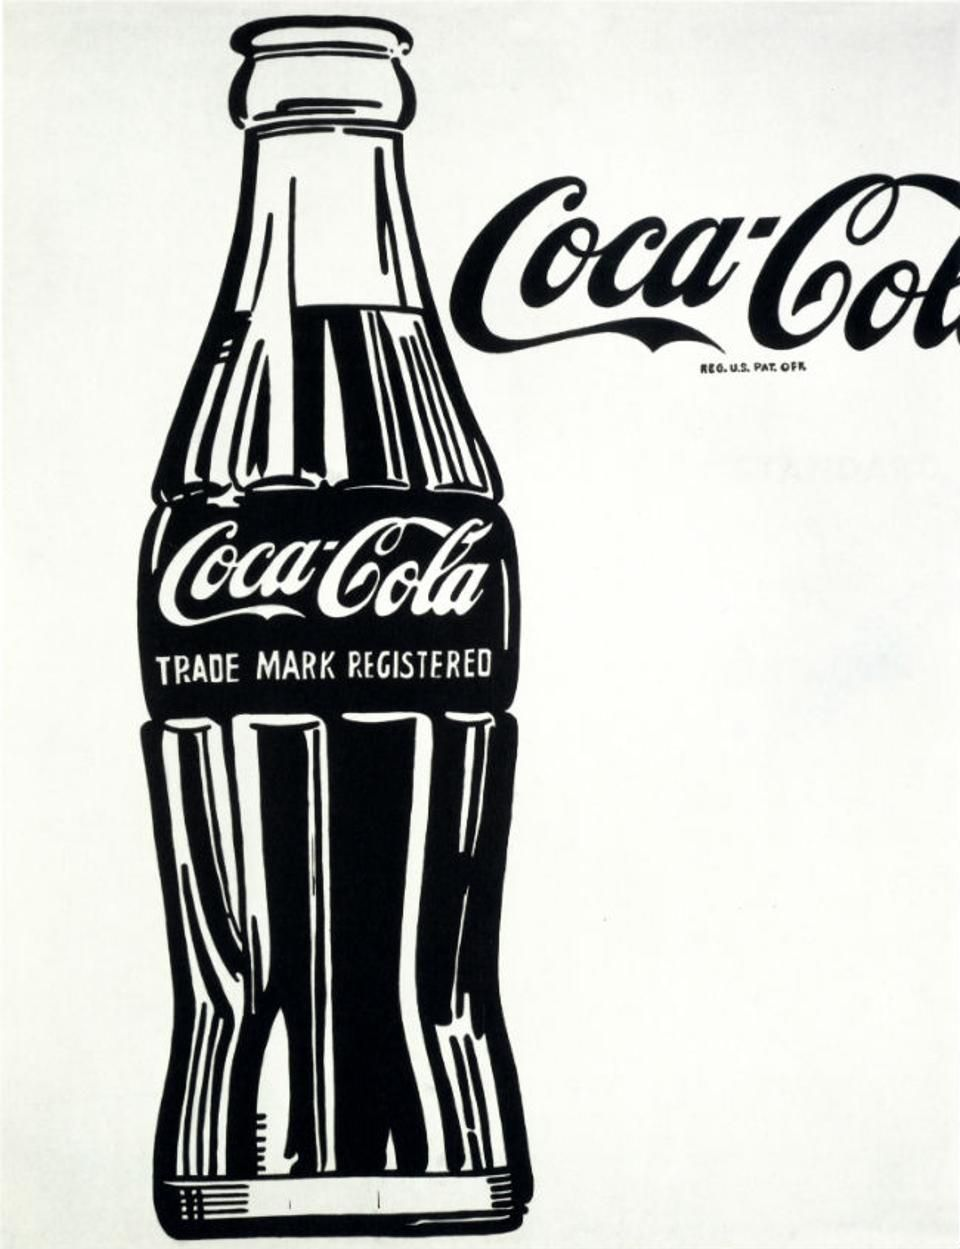 Coca Cola Bottle Clipart & Free Coca Cola Bottle Clipart.png.